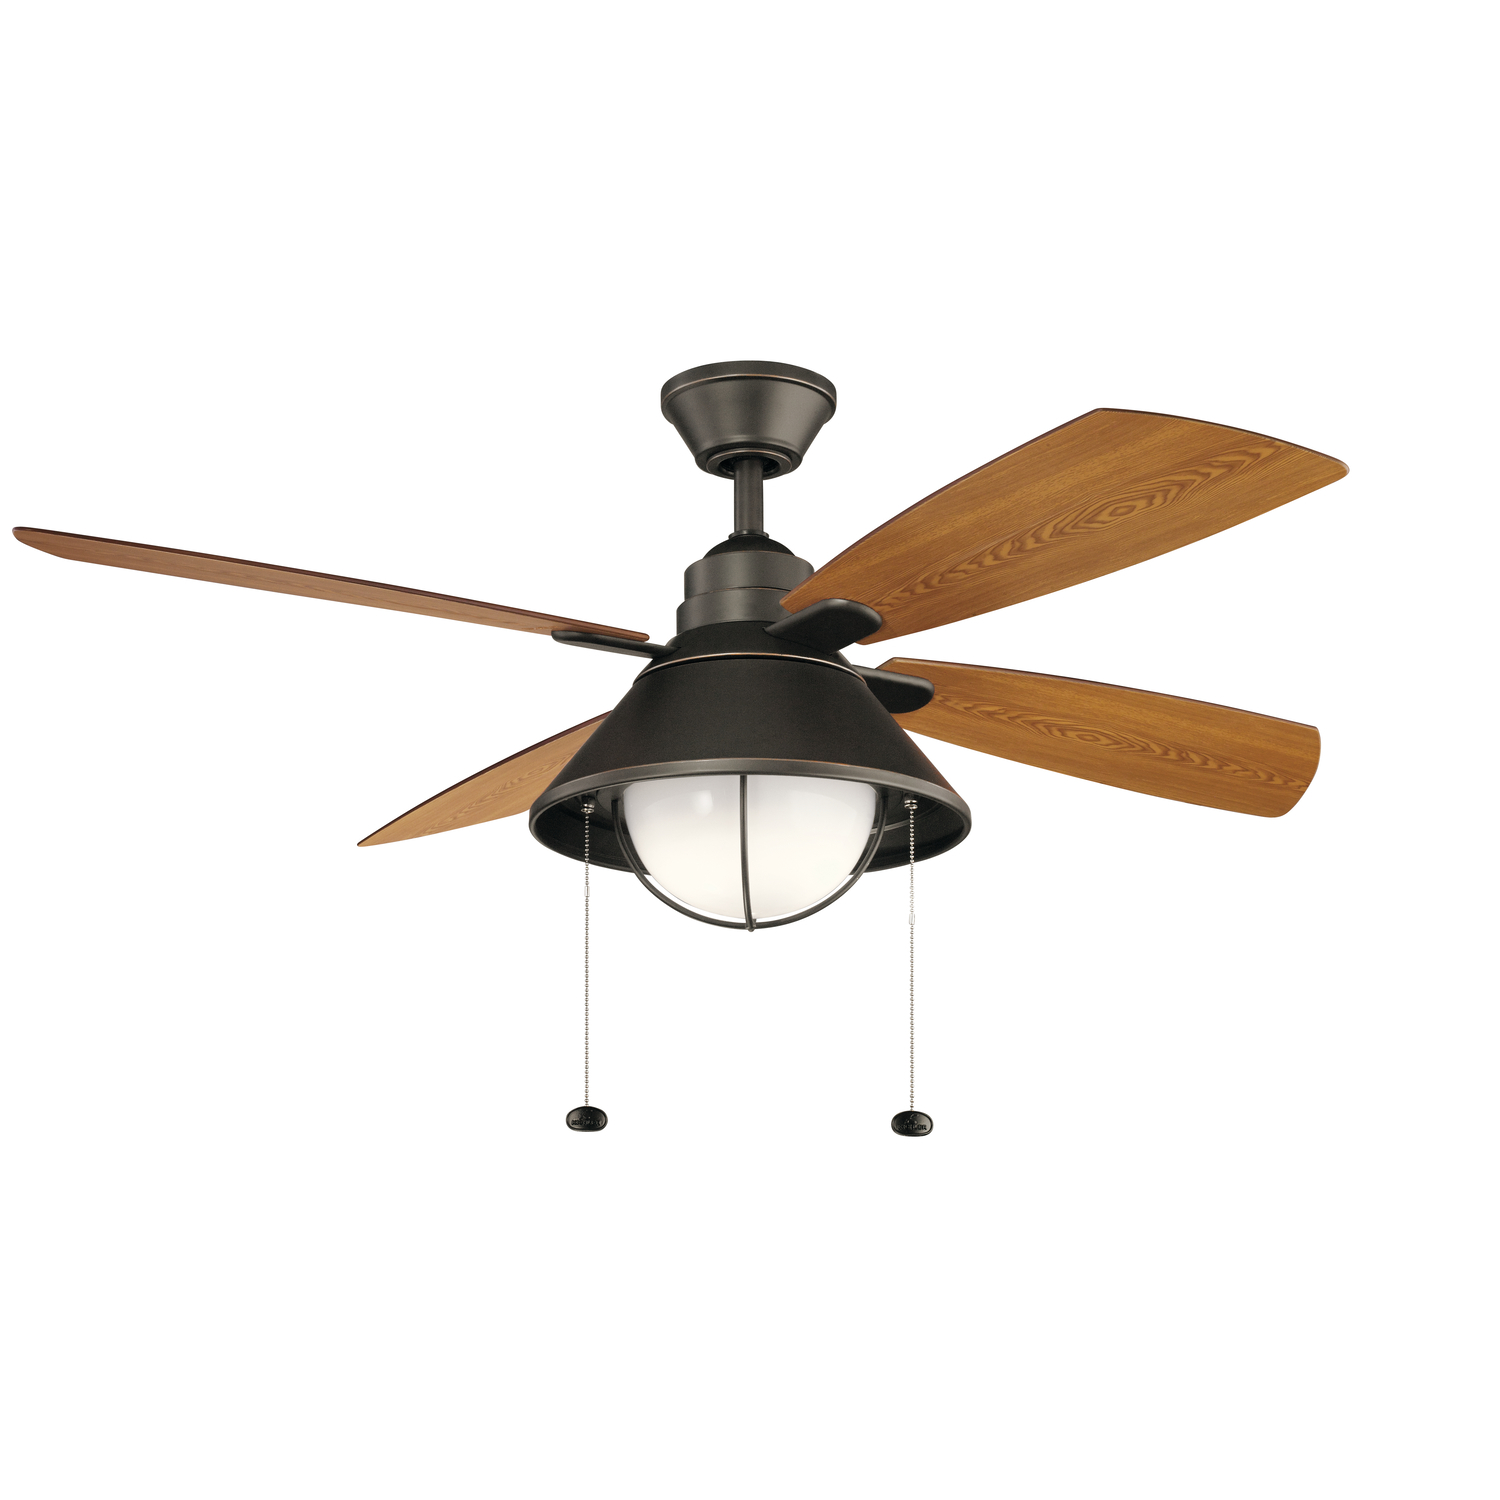 54 inchCeiling Fan from the Seaside collection by Kichler 310181OZ